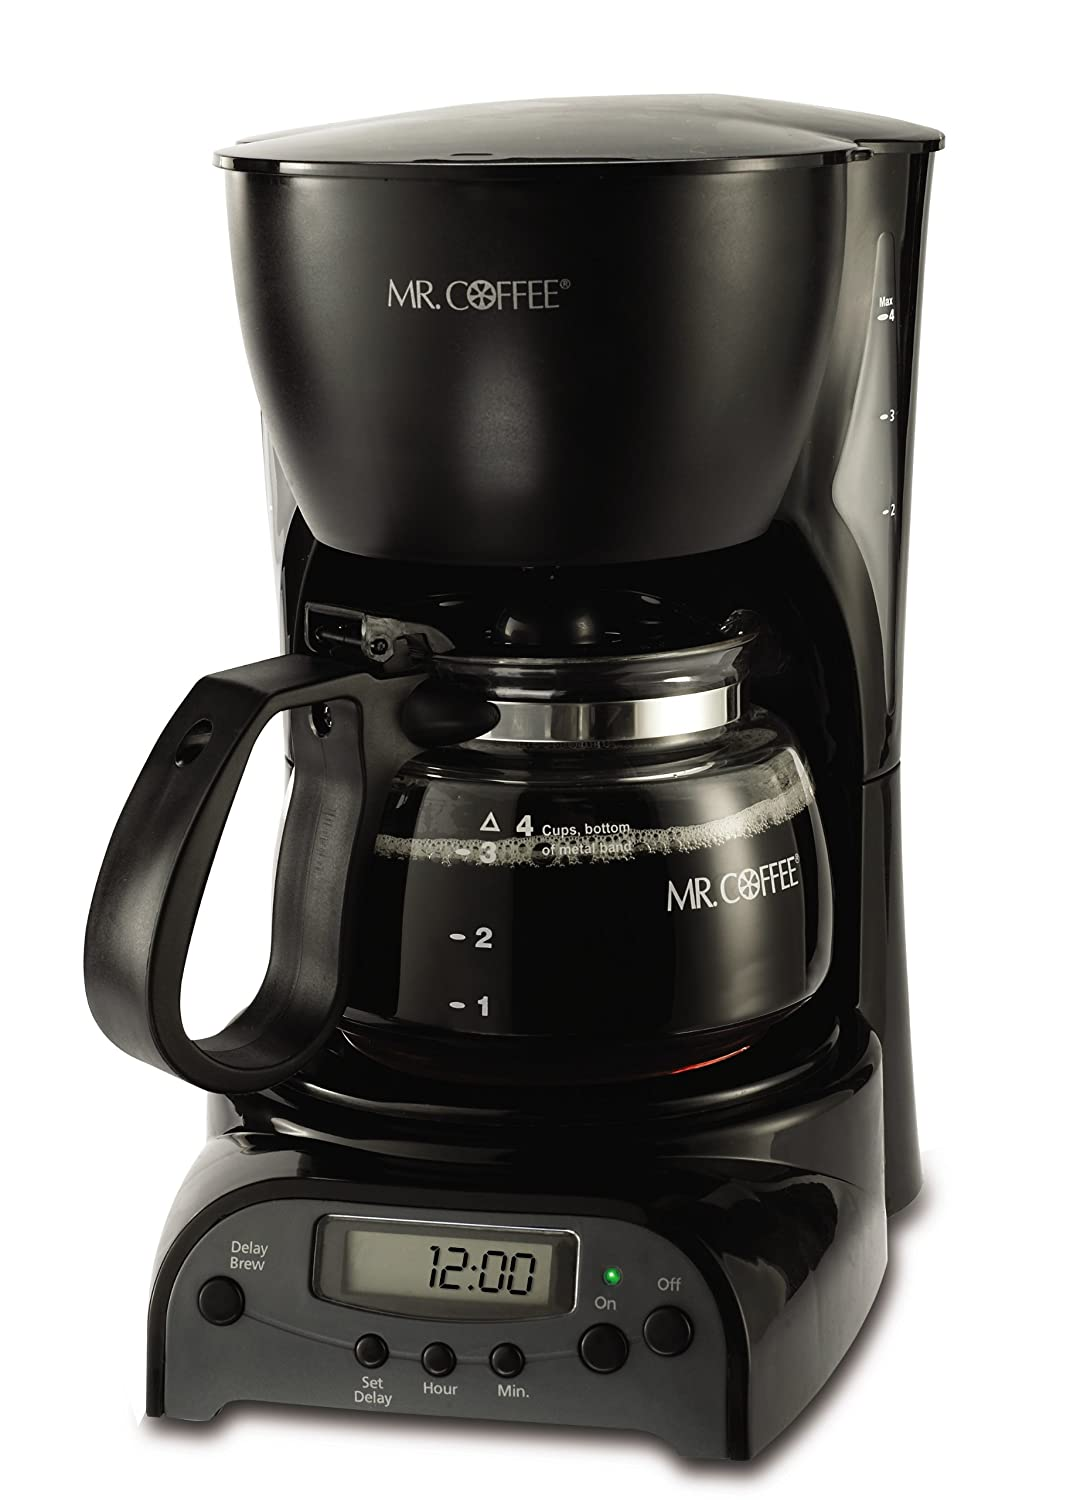 Continental Electric Coffee Maker How To Use : Free download Continental Coffee Maker Manual programs - dragonprogramy